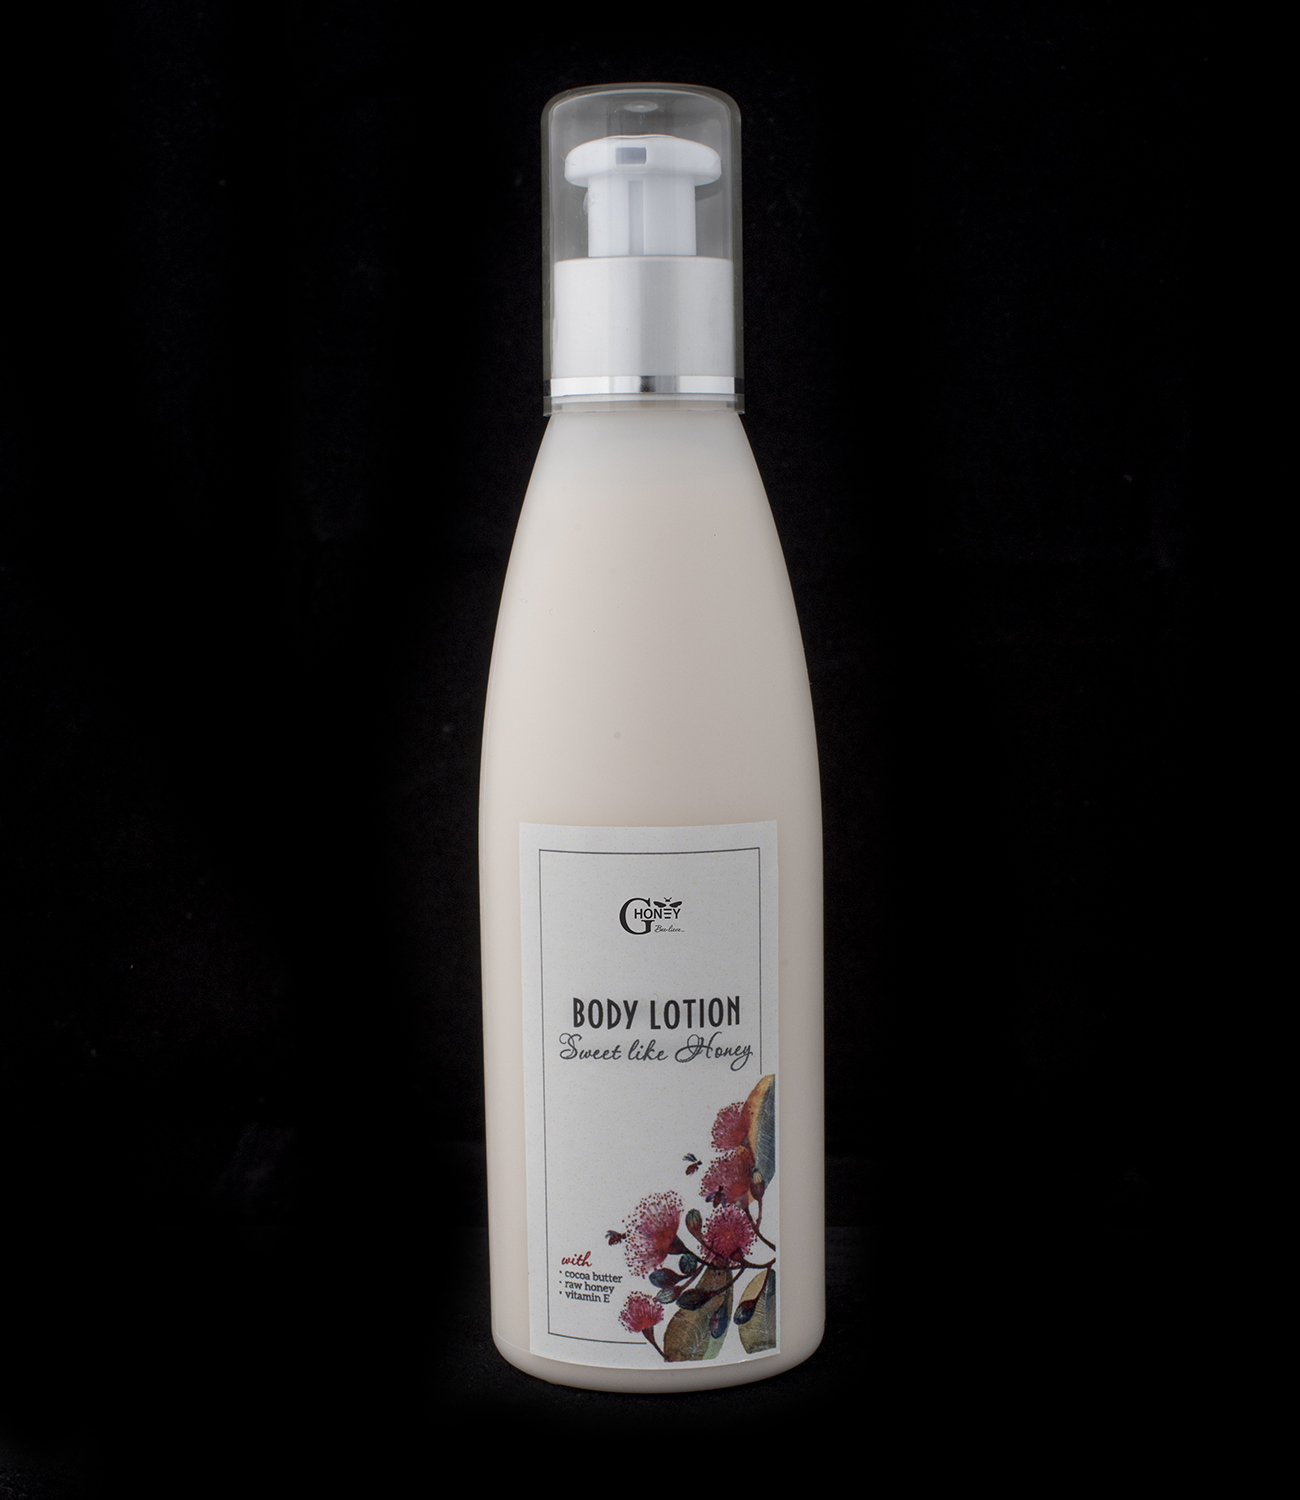 GHoney Body Lotion wth cocoa butter, raw honey and vitamin E